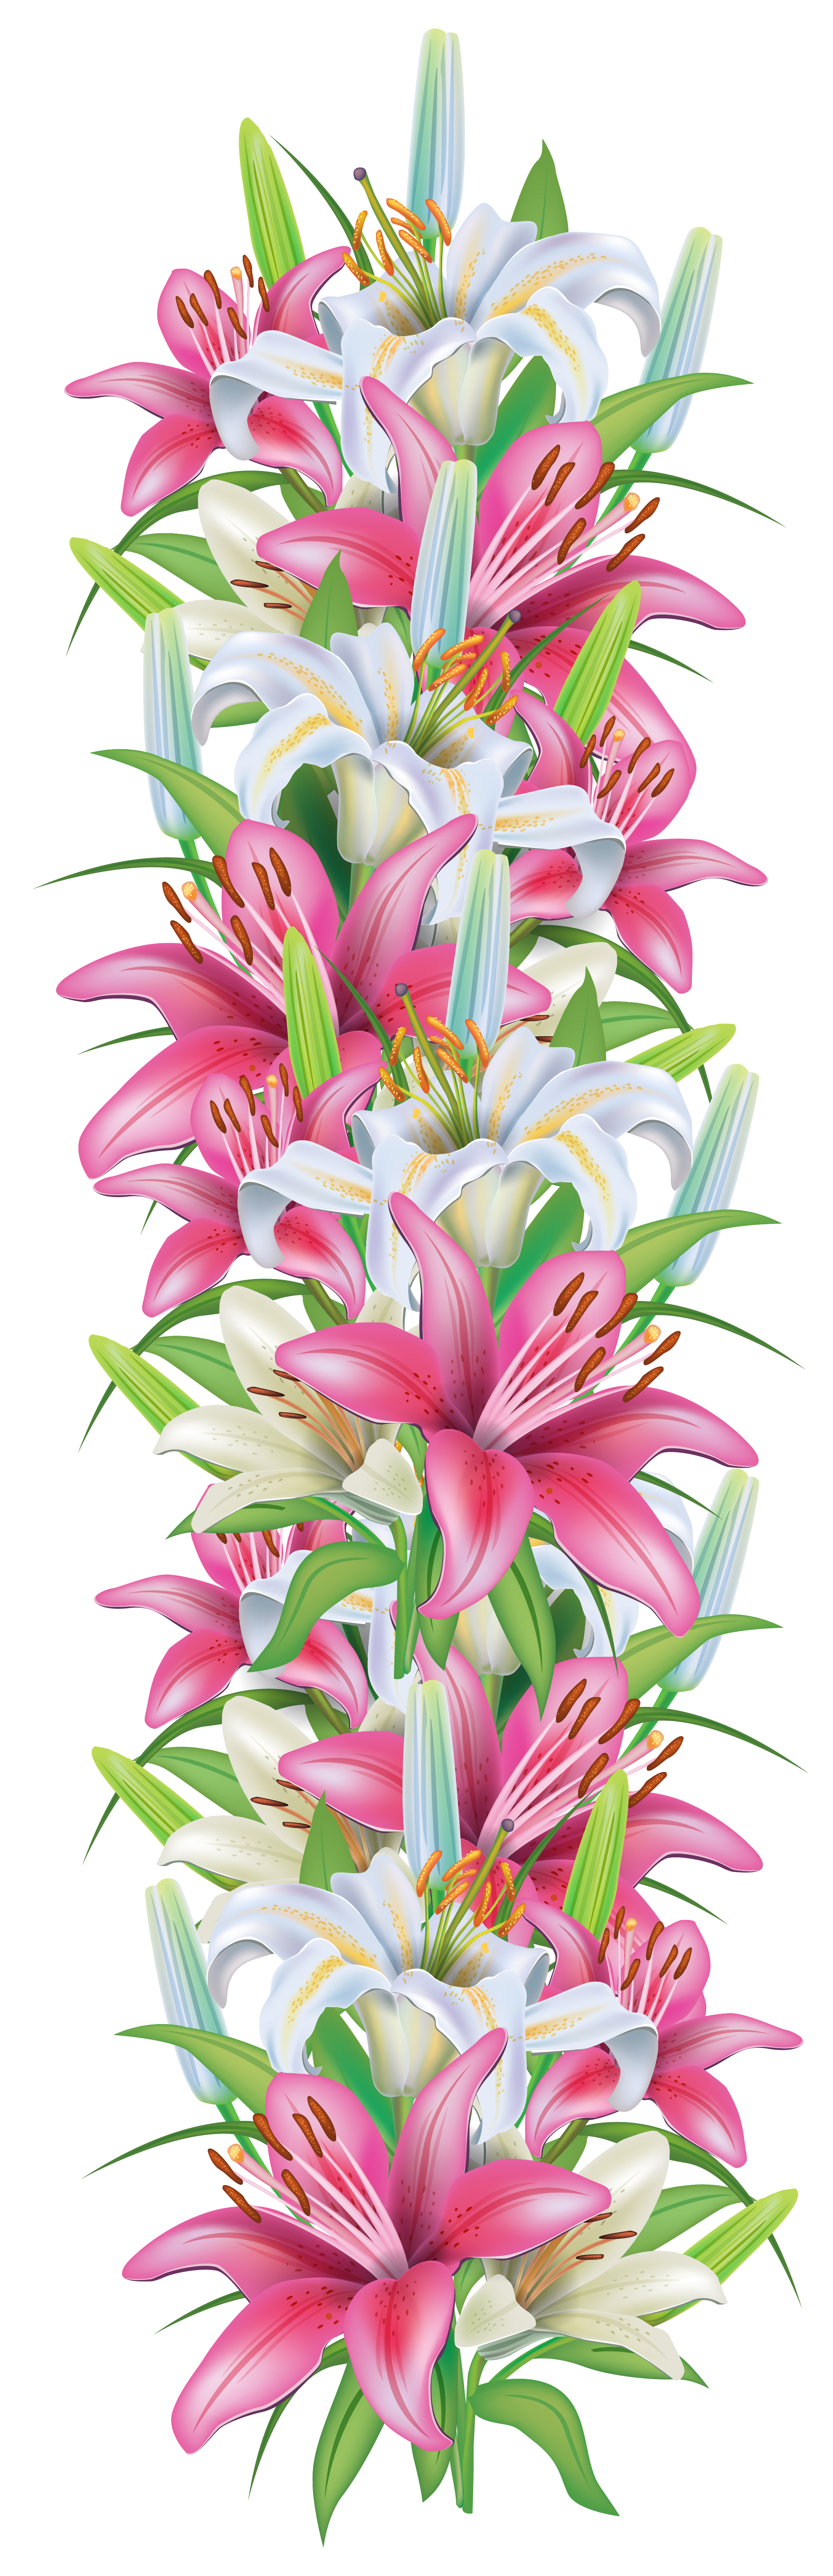 Pink lily flower transparent image the cliparts - Pink And White Lilies Decoration Border Png Clipart Image